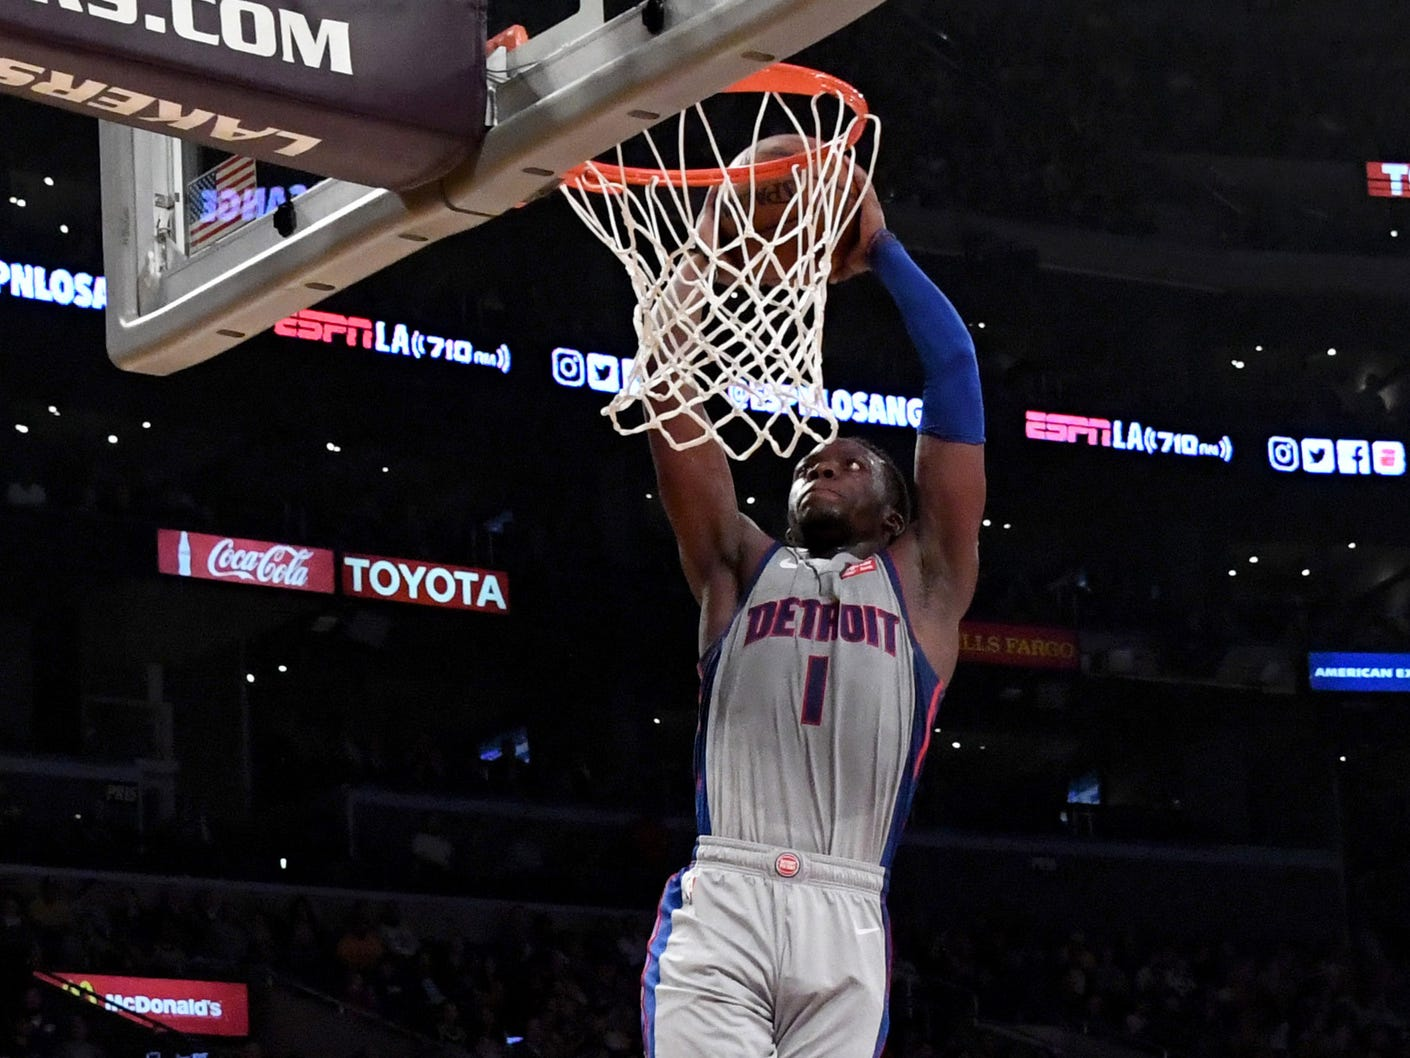 Detroit Pistons guard Reggie Jackson (1) dunks against the Los Angeles Lakers during the first half at the Staples Center on Wednesday, Jan. 9, 2019, in Los Angeles.